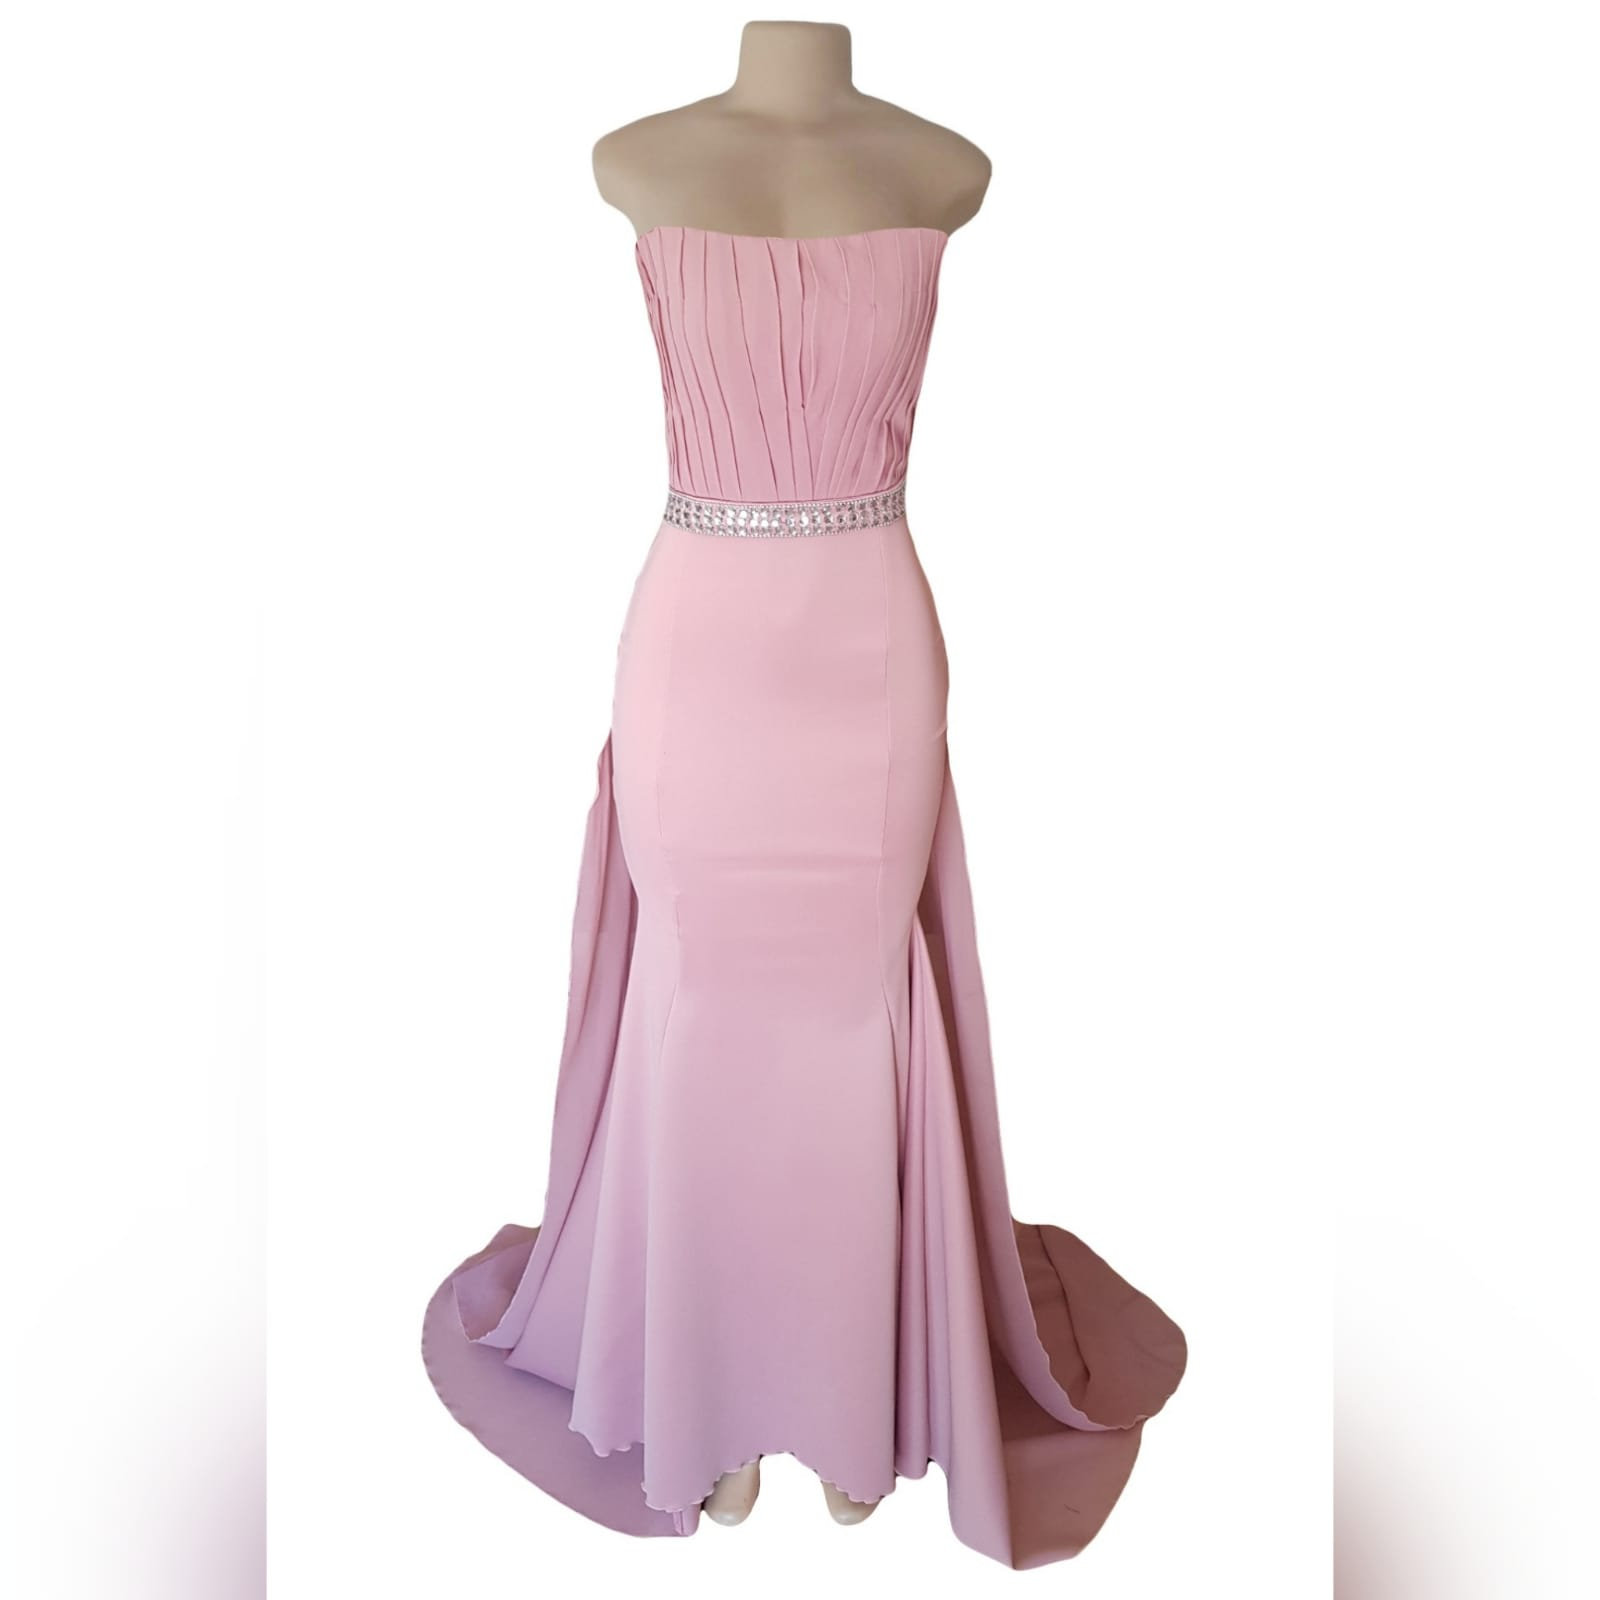 Dusty pink soft mermaid prom dress with a pleated bodice 12 dusty pink soft mermaid prom dress with a pleated bodice, with a train. Extra detachable chiffon train with a beaded belt and removable shoulder straps